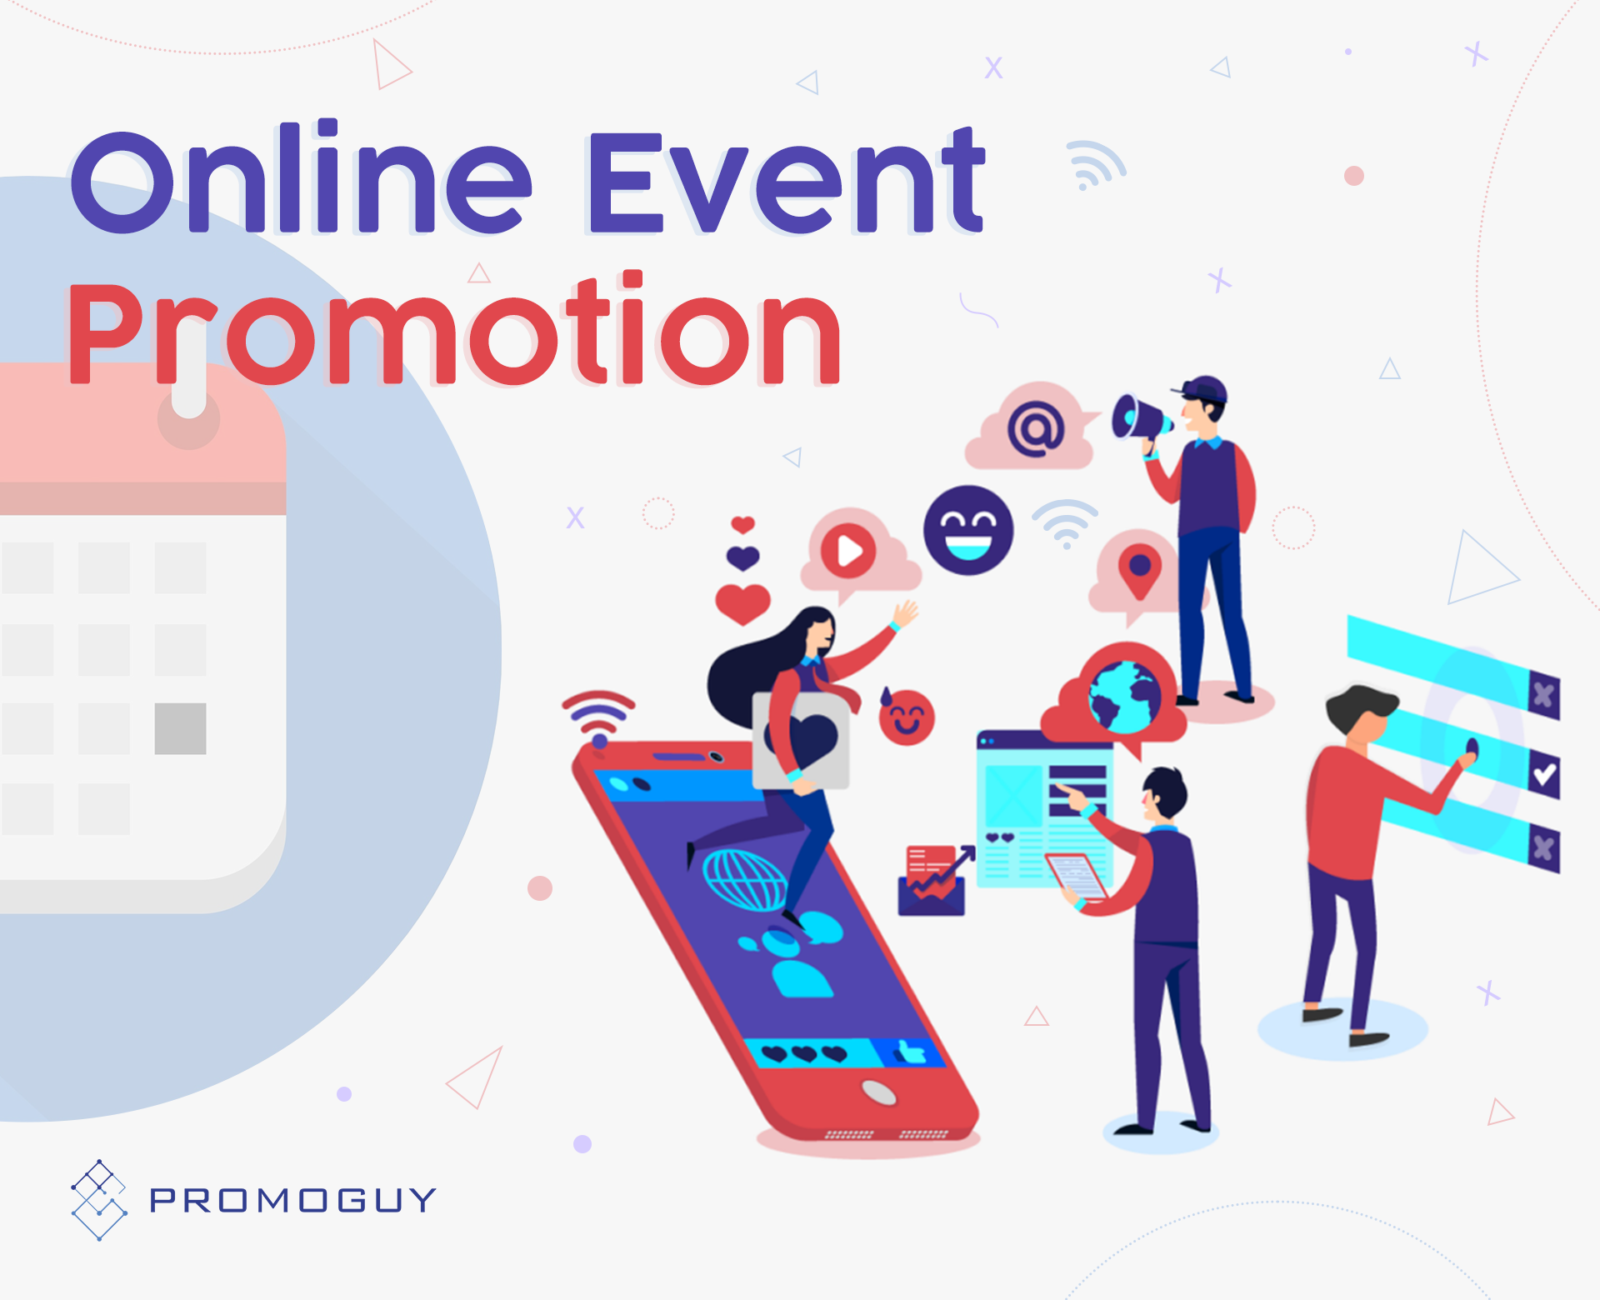 Event SEO, Promotion, & Online Marketing Tips For 2021